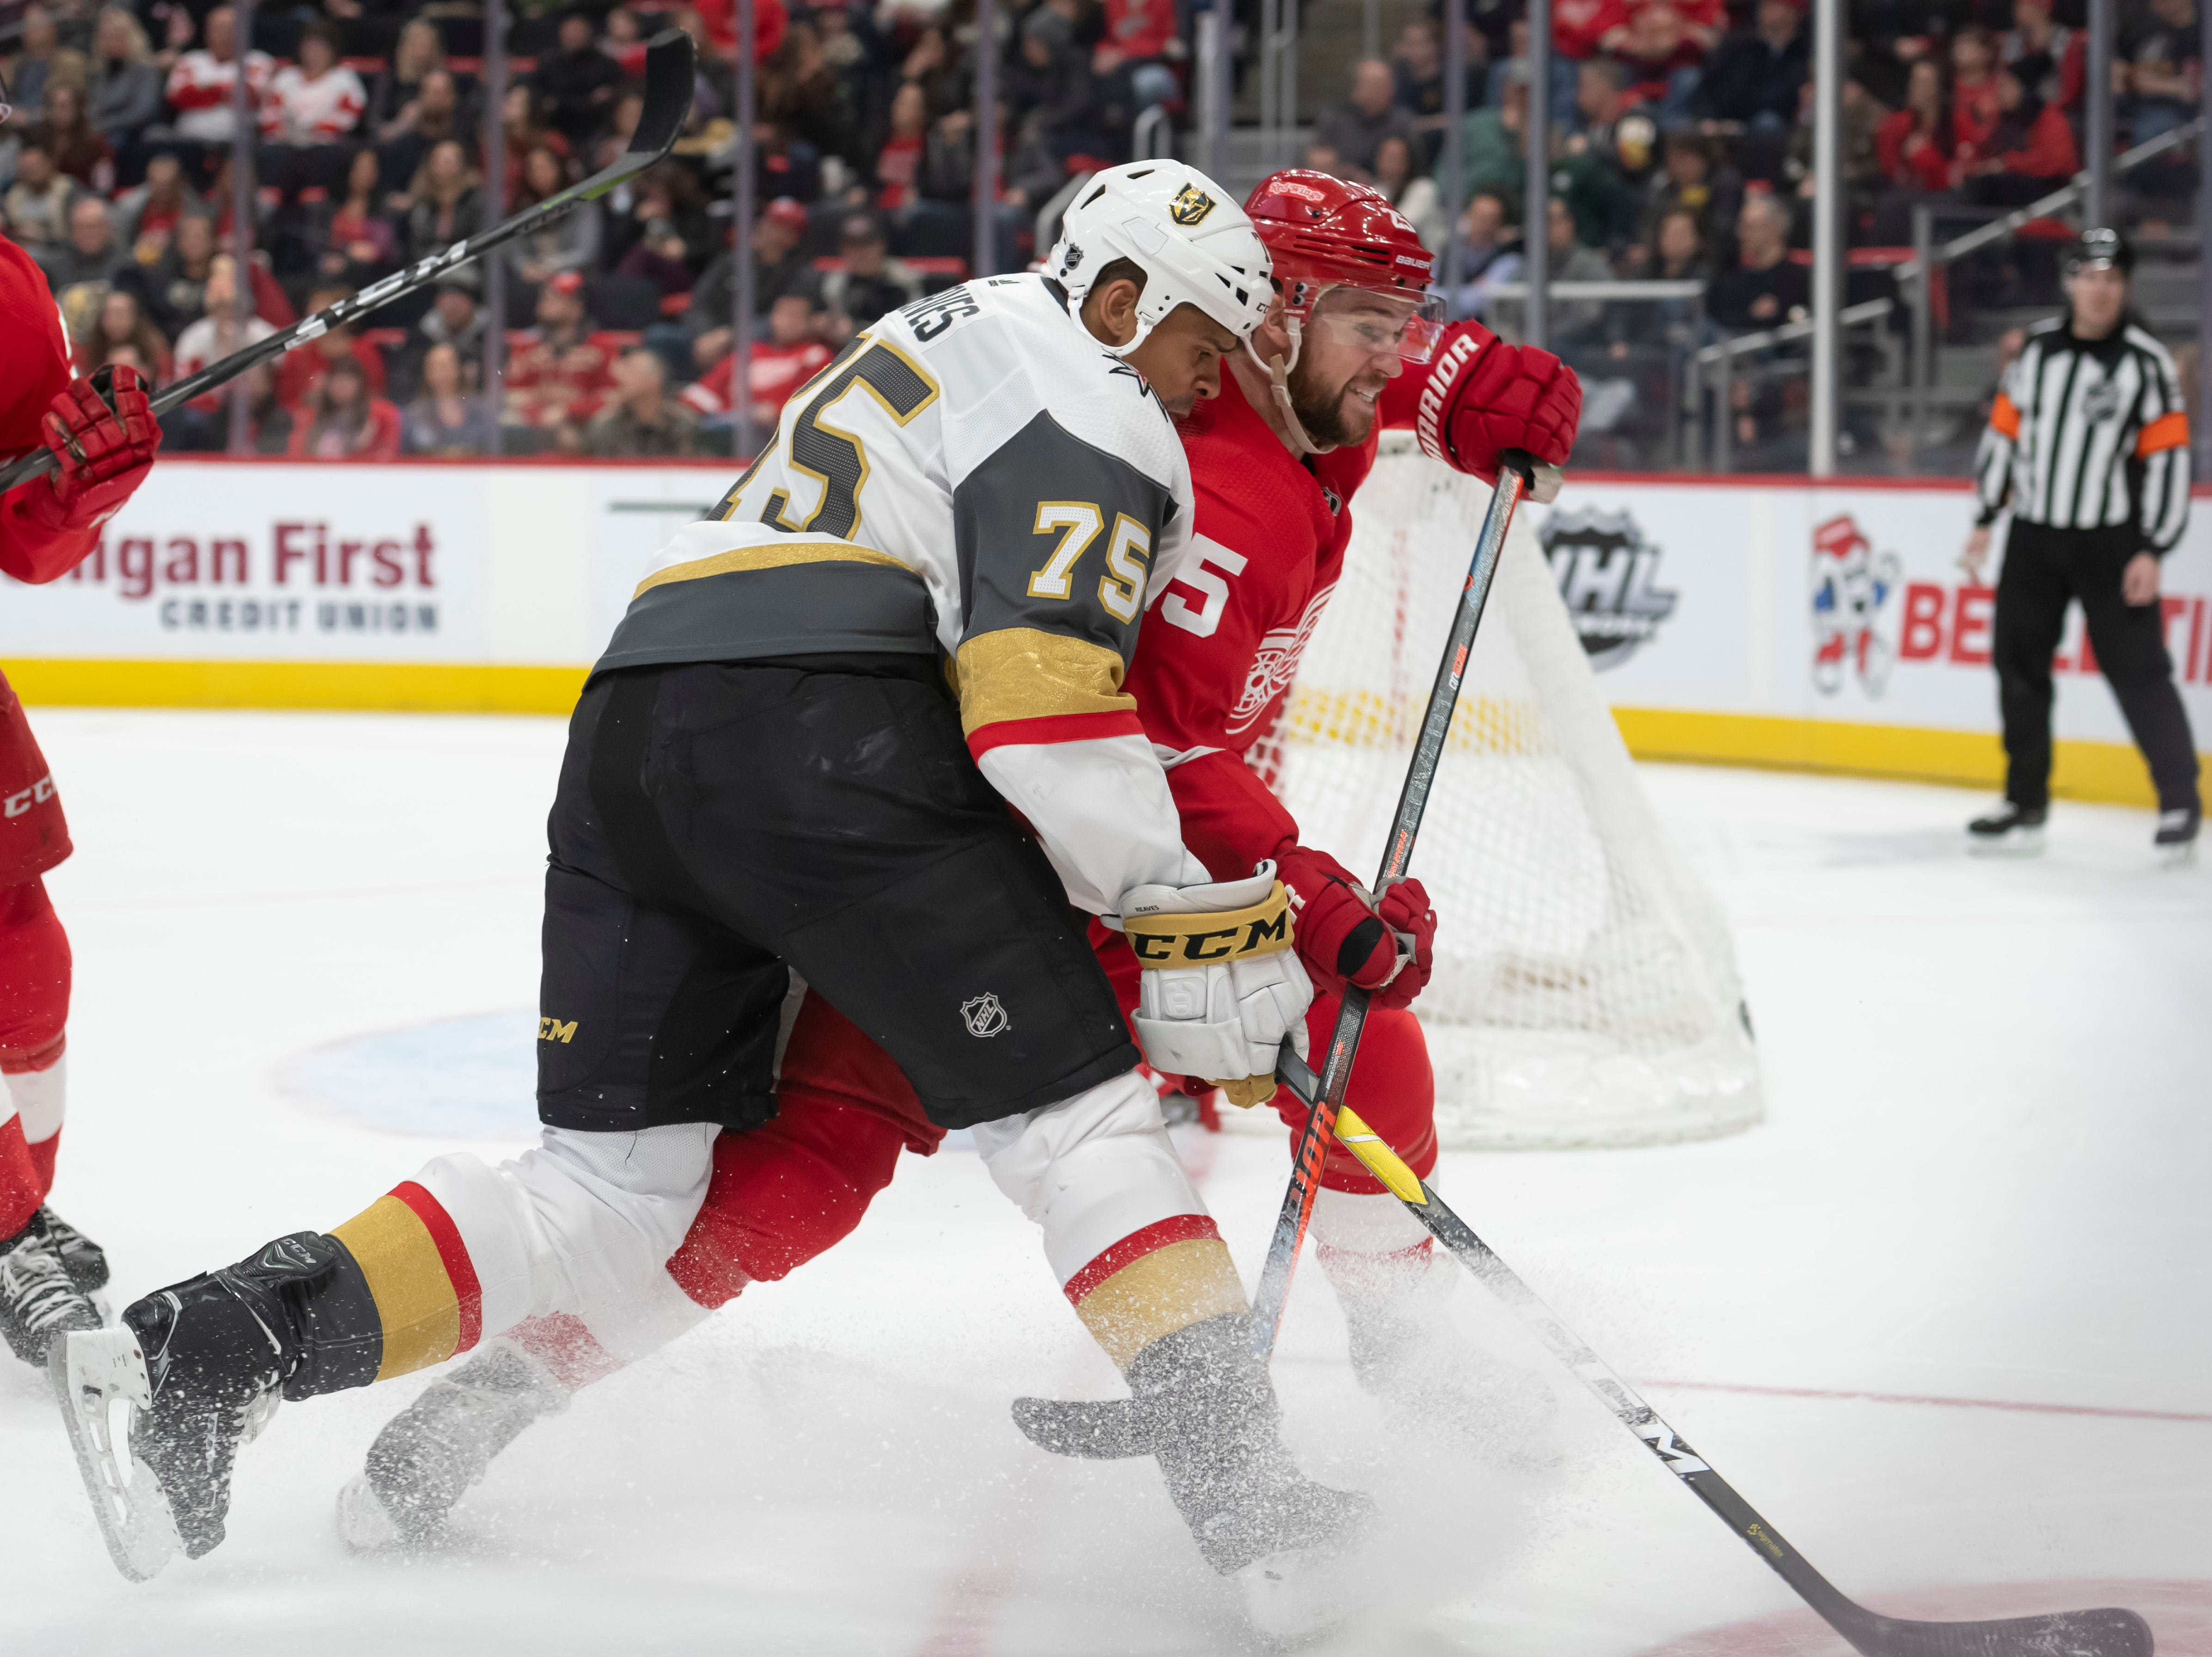 Vegas right wing Ryan Reaves and Detroit defenseman Mike Green battle for the puck in the second period.